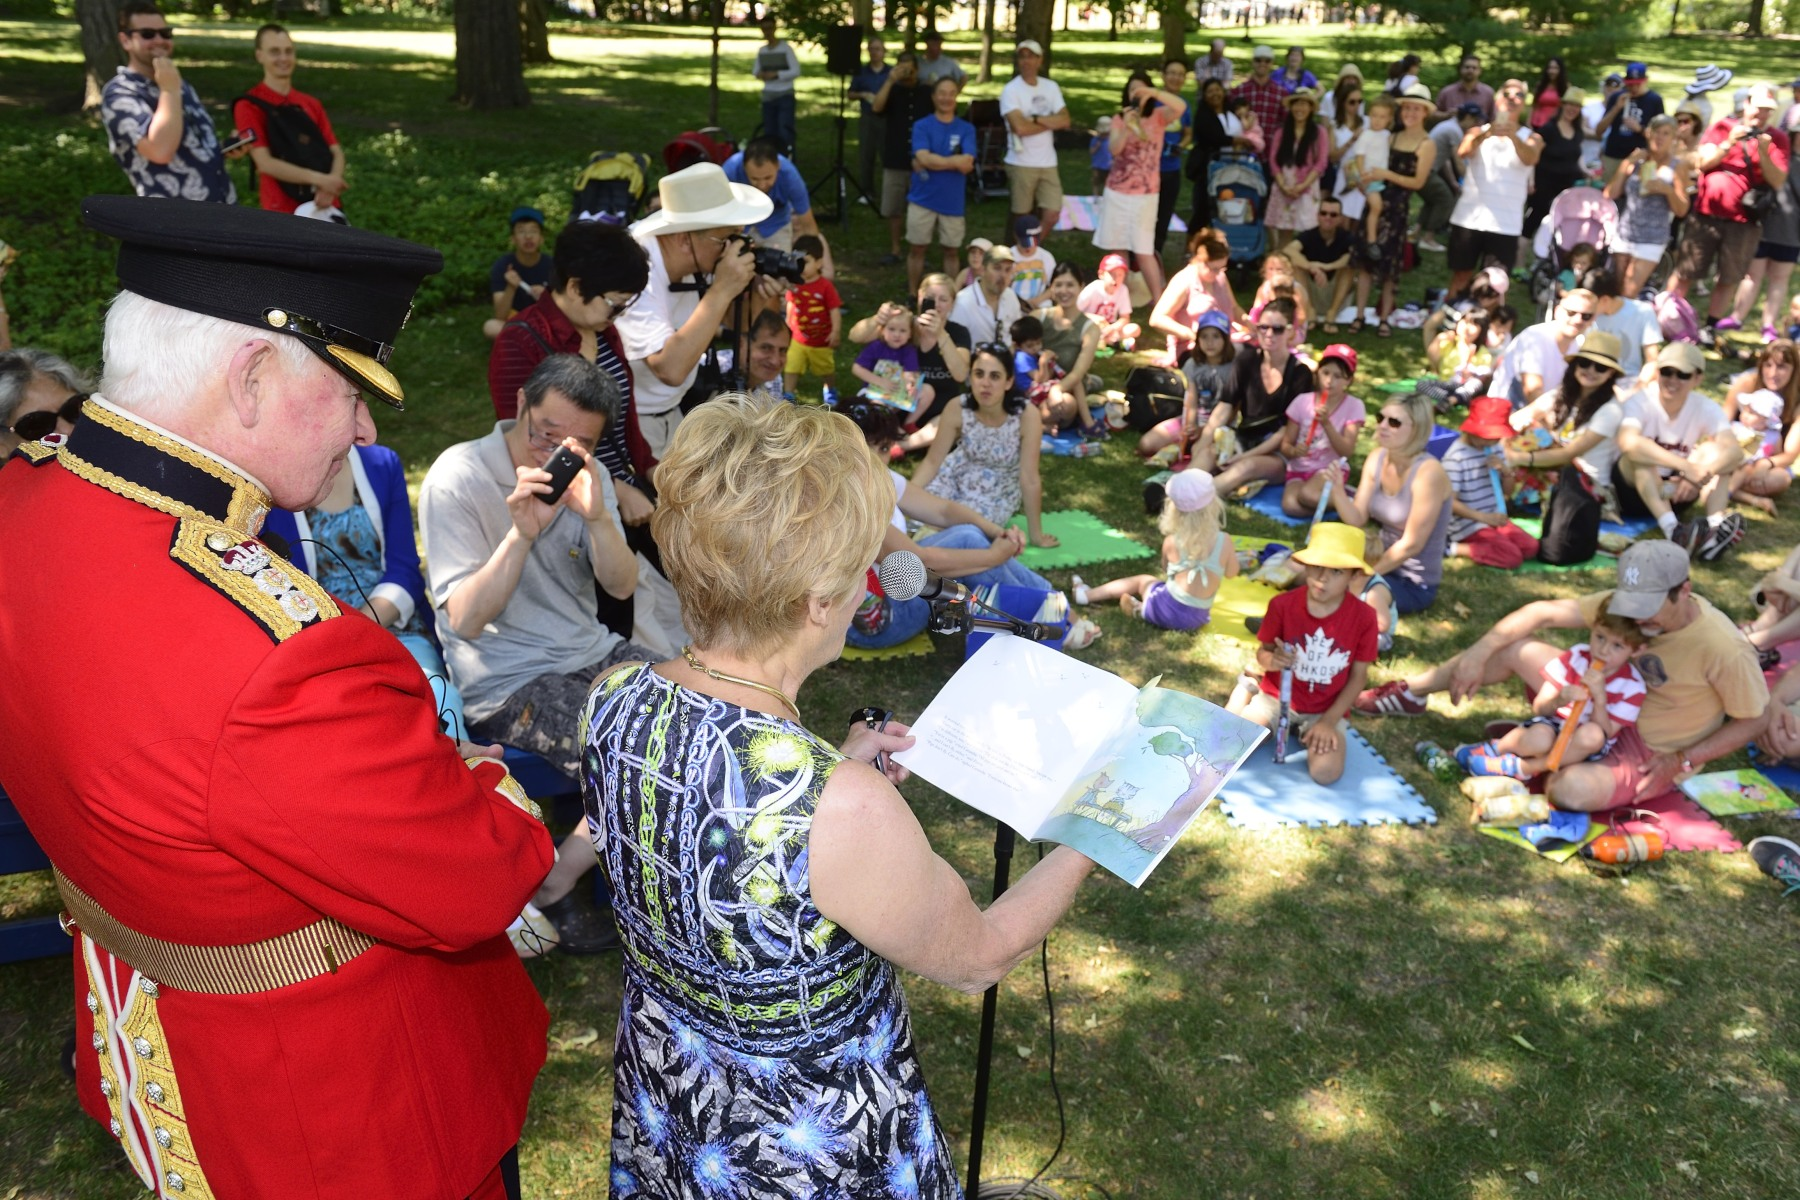 Following the inspection, the Governor General and Her Excellency Sharon Johnston, along with a special guest from the Ceremonial Guard and volunteers from Frontier College, launched Storytime at Rideau Hall.